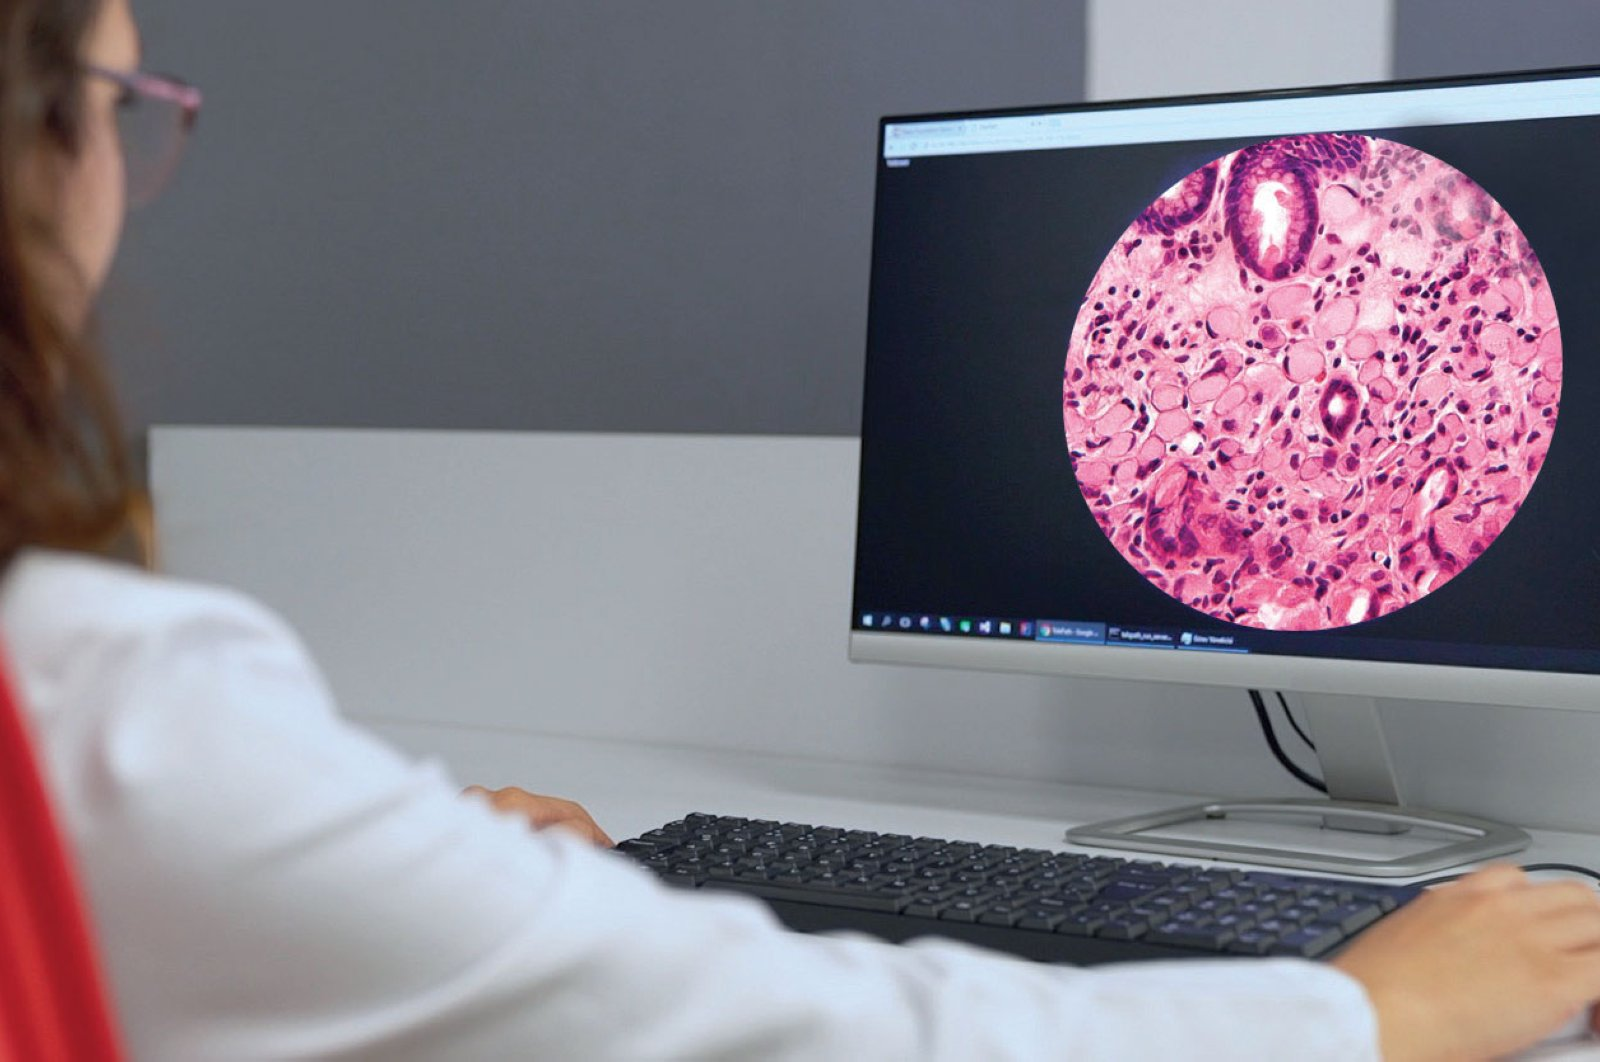 Founded in 2015, Virasoft's digital pathology solution has already been used in many private and public hospitals.